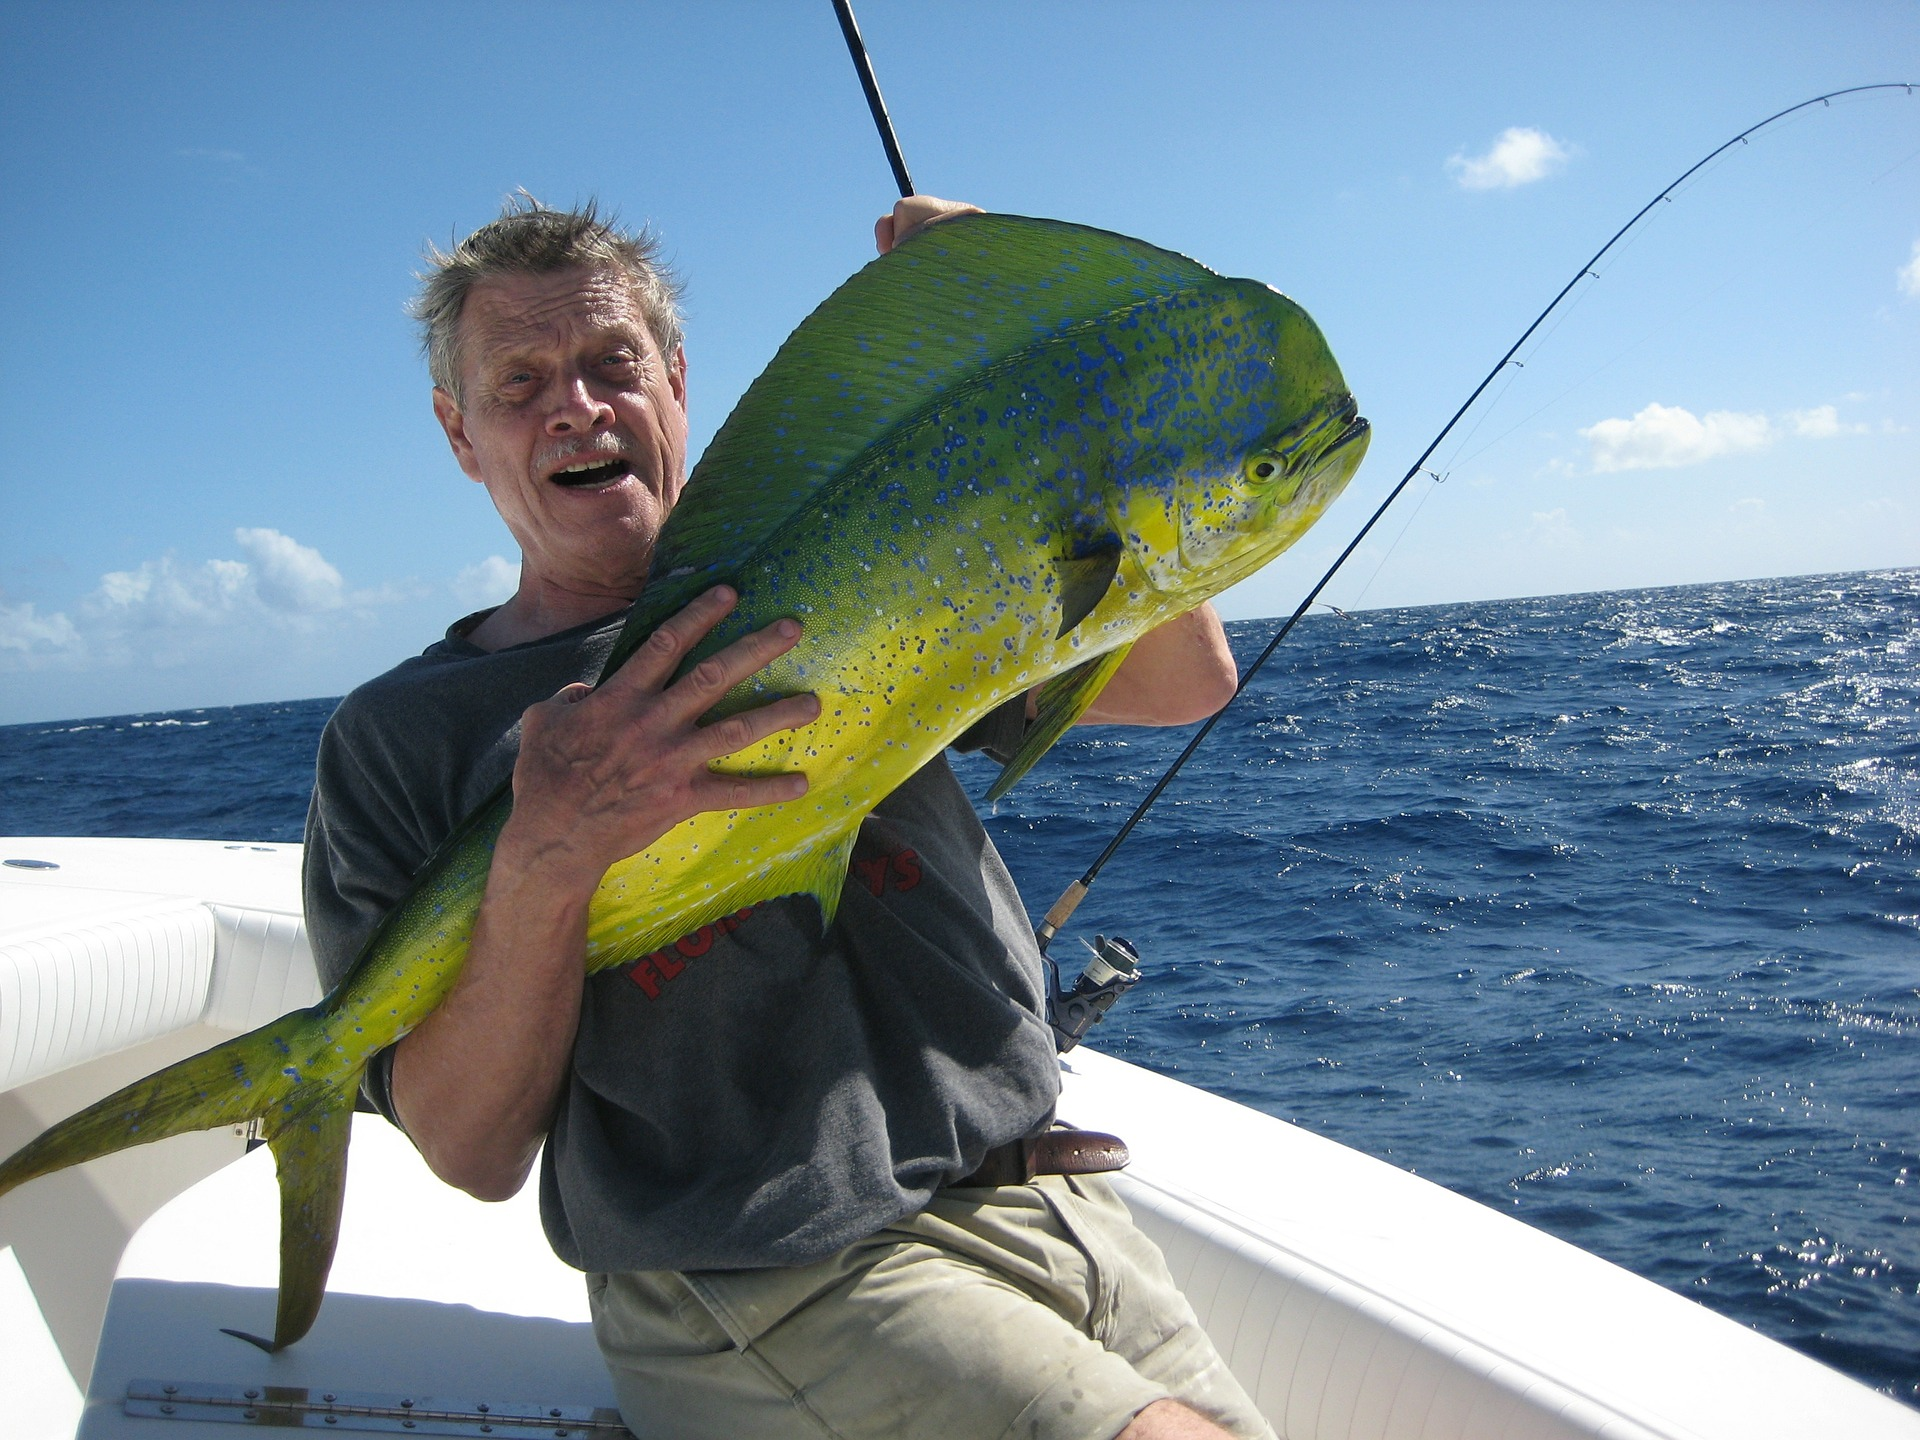 Man holding a hefty green fish in his hand.